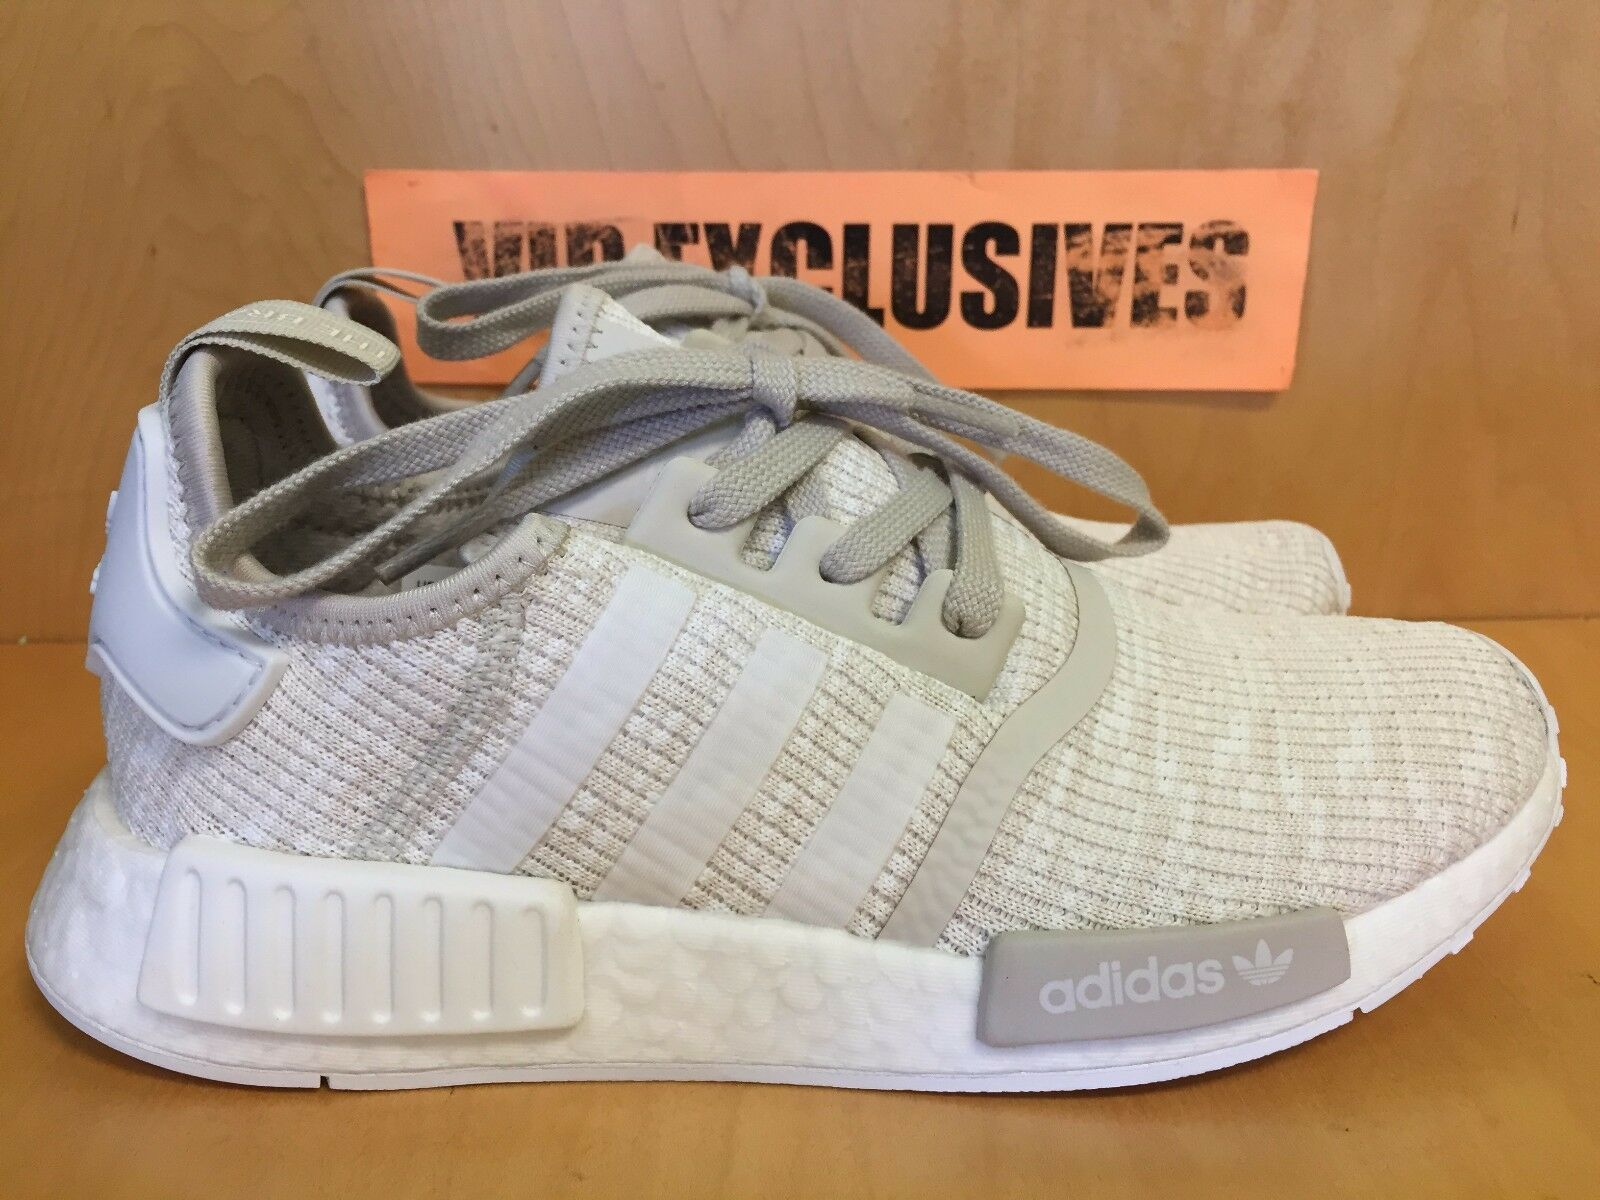 Adidas nmd r1 w donna a maglia marrone creme donna w nomade runner cg2999 limited 2f9c1c